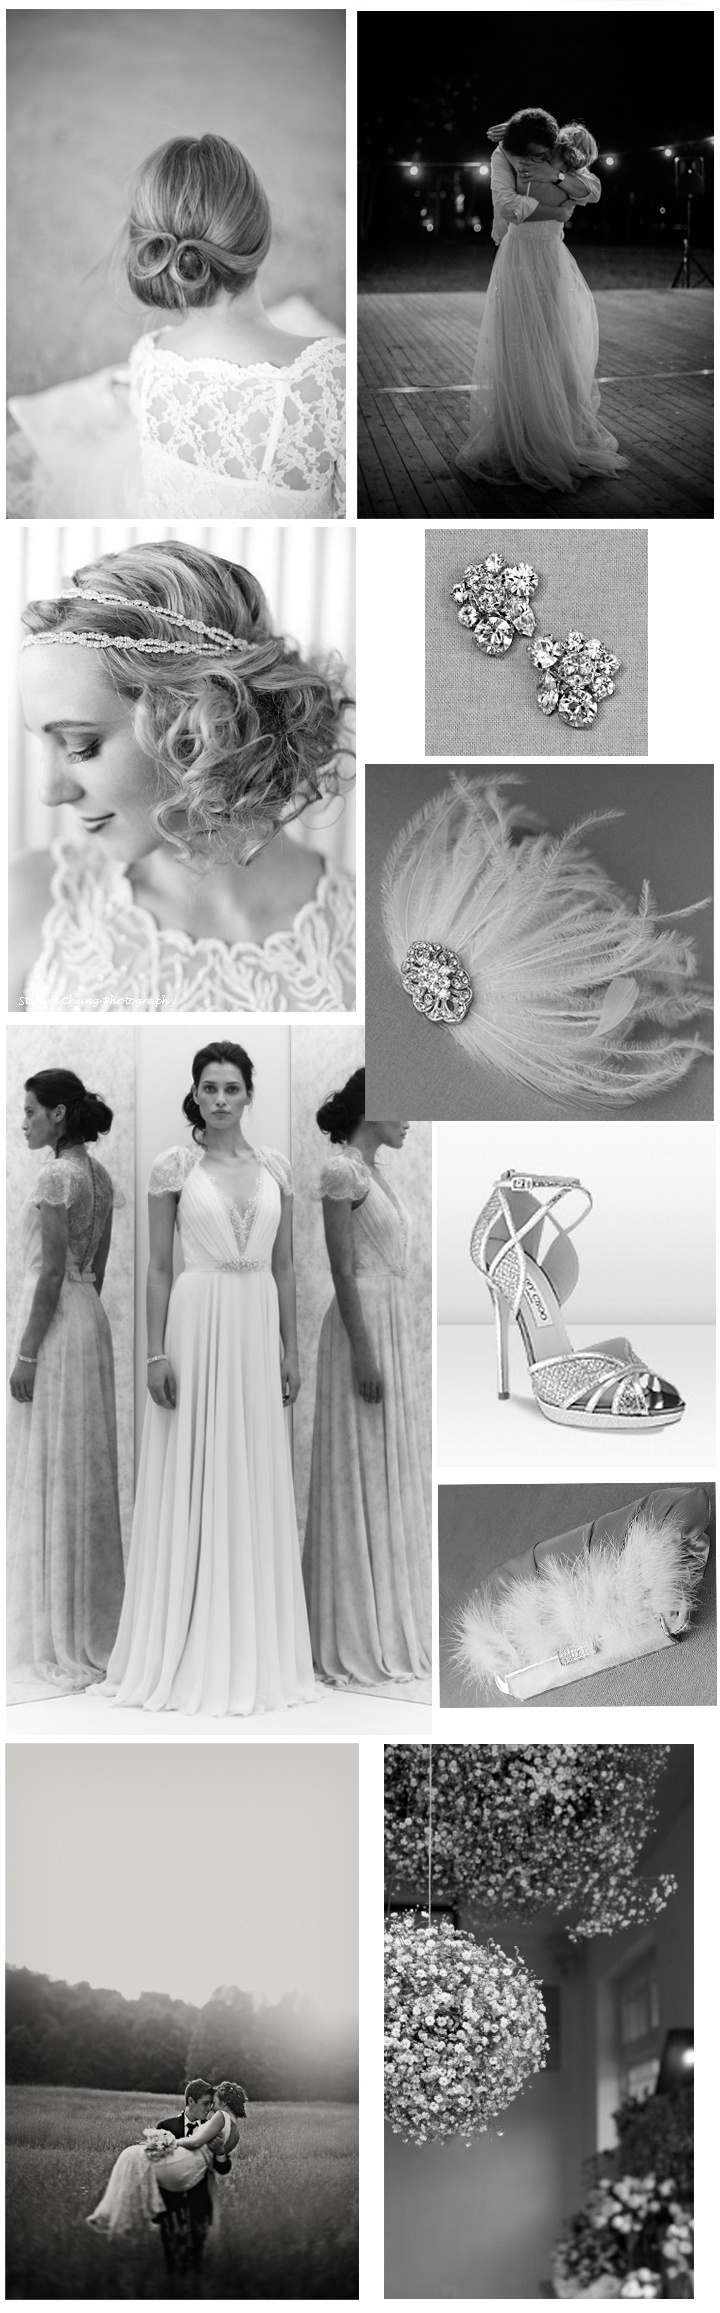 56 best Prom 2015 images on Pinterest | Art deco wedding, Beauty and ...